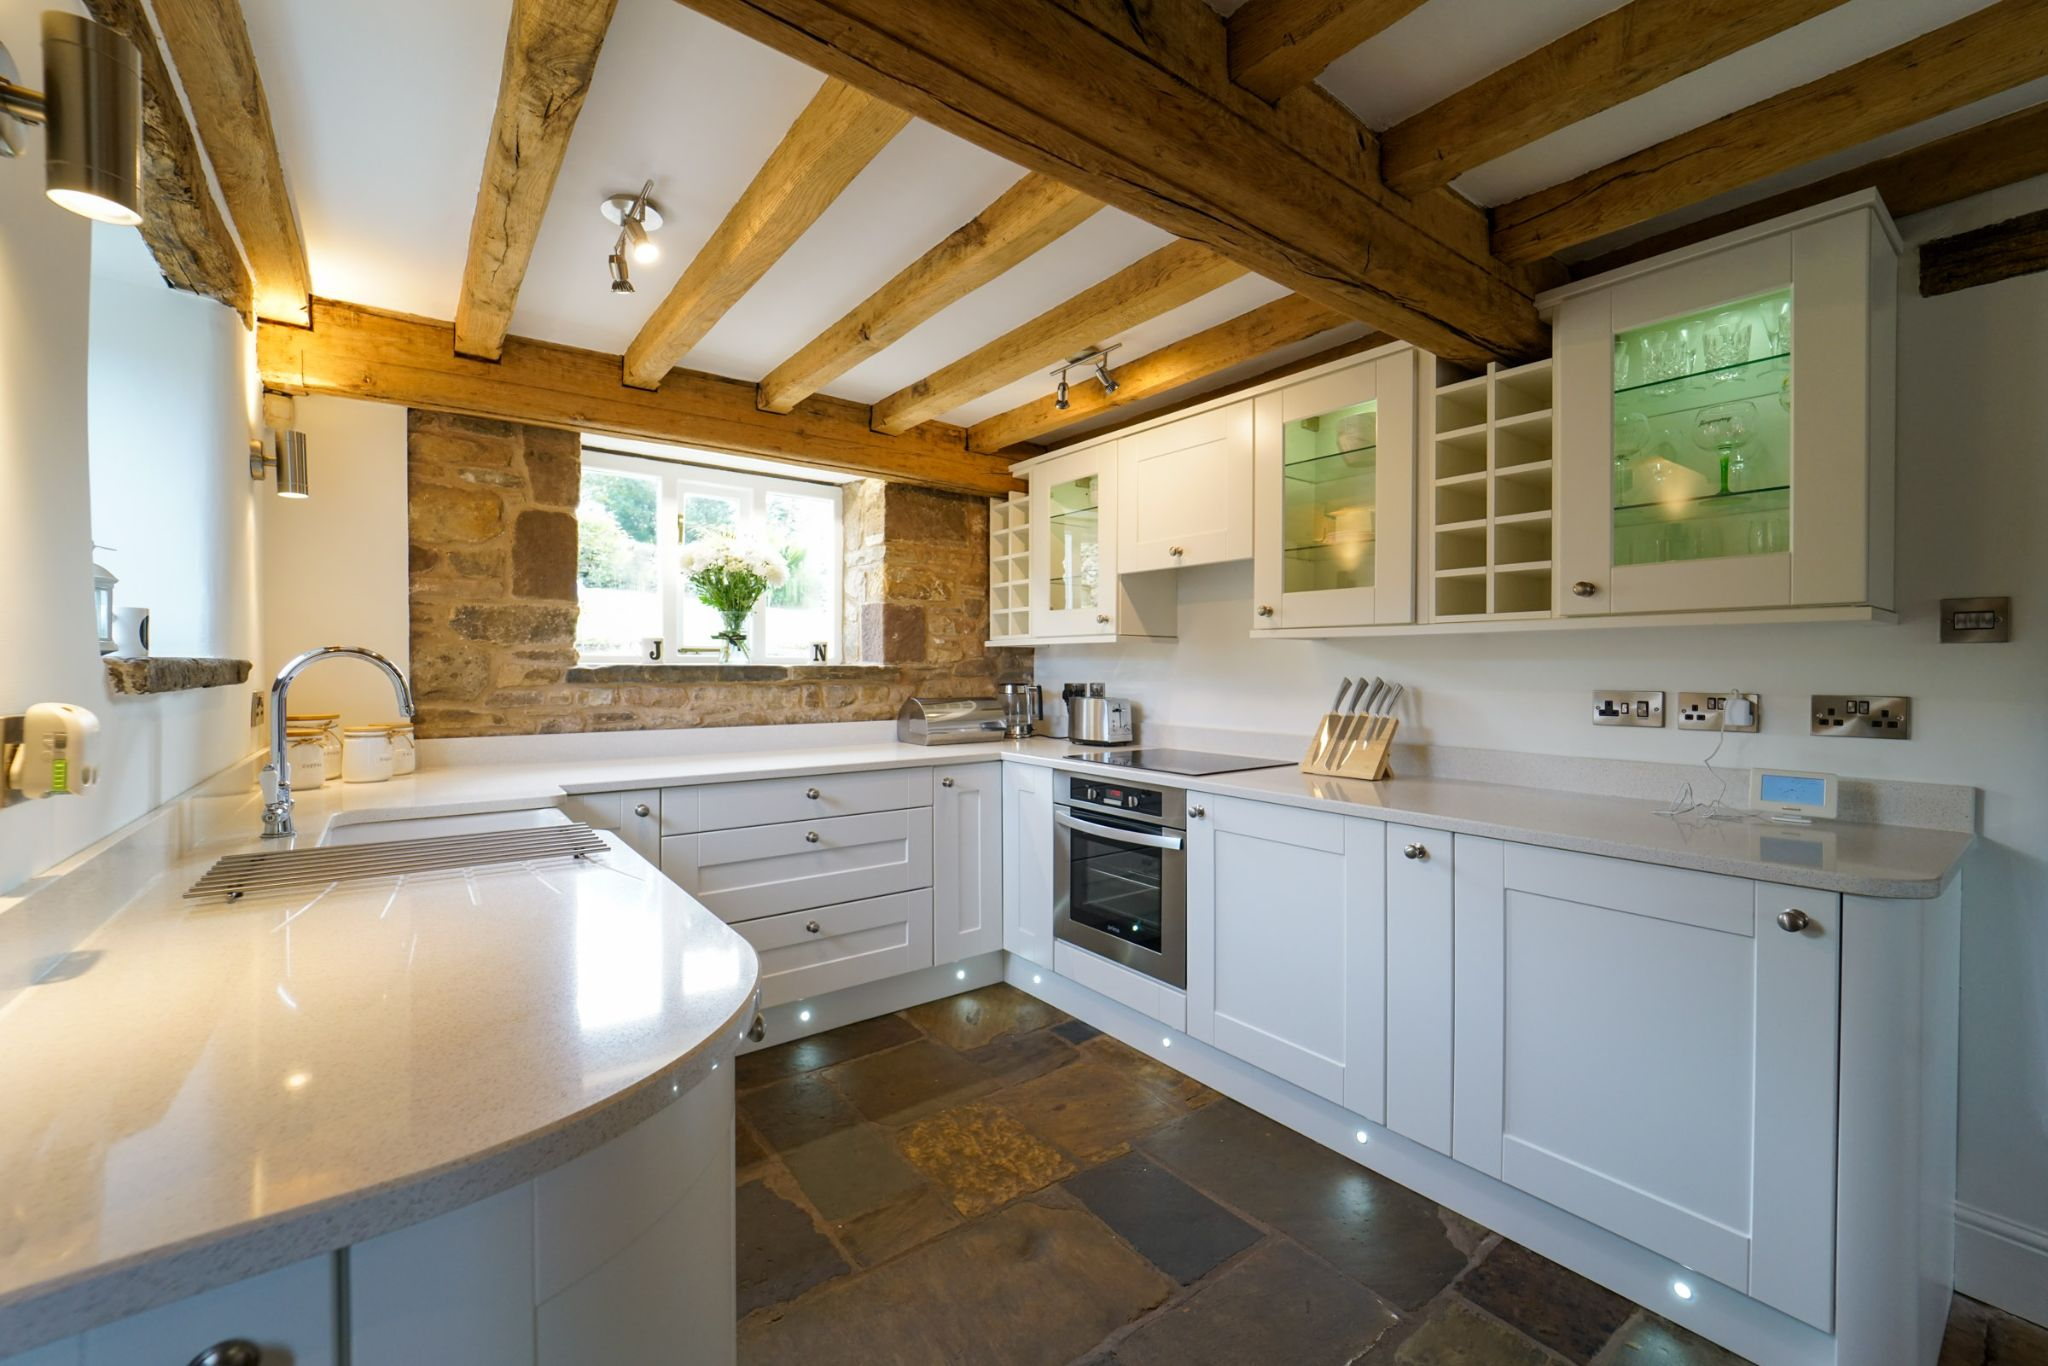 4 bedroom undefined house For Sale in Darwen - Photograph 53